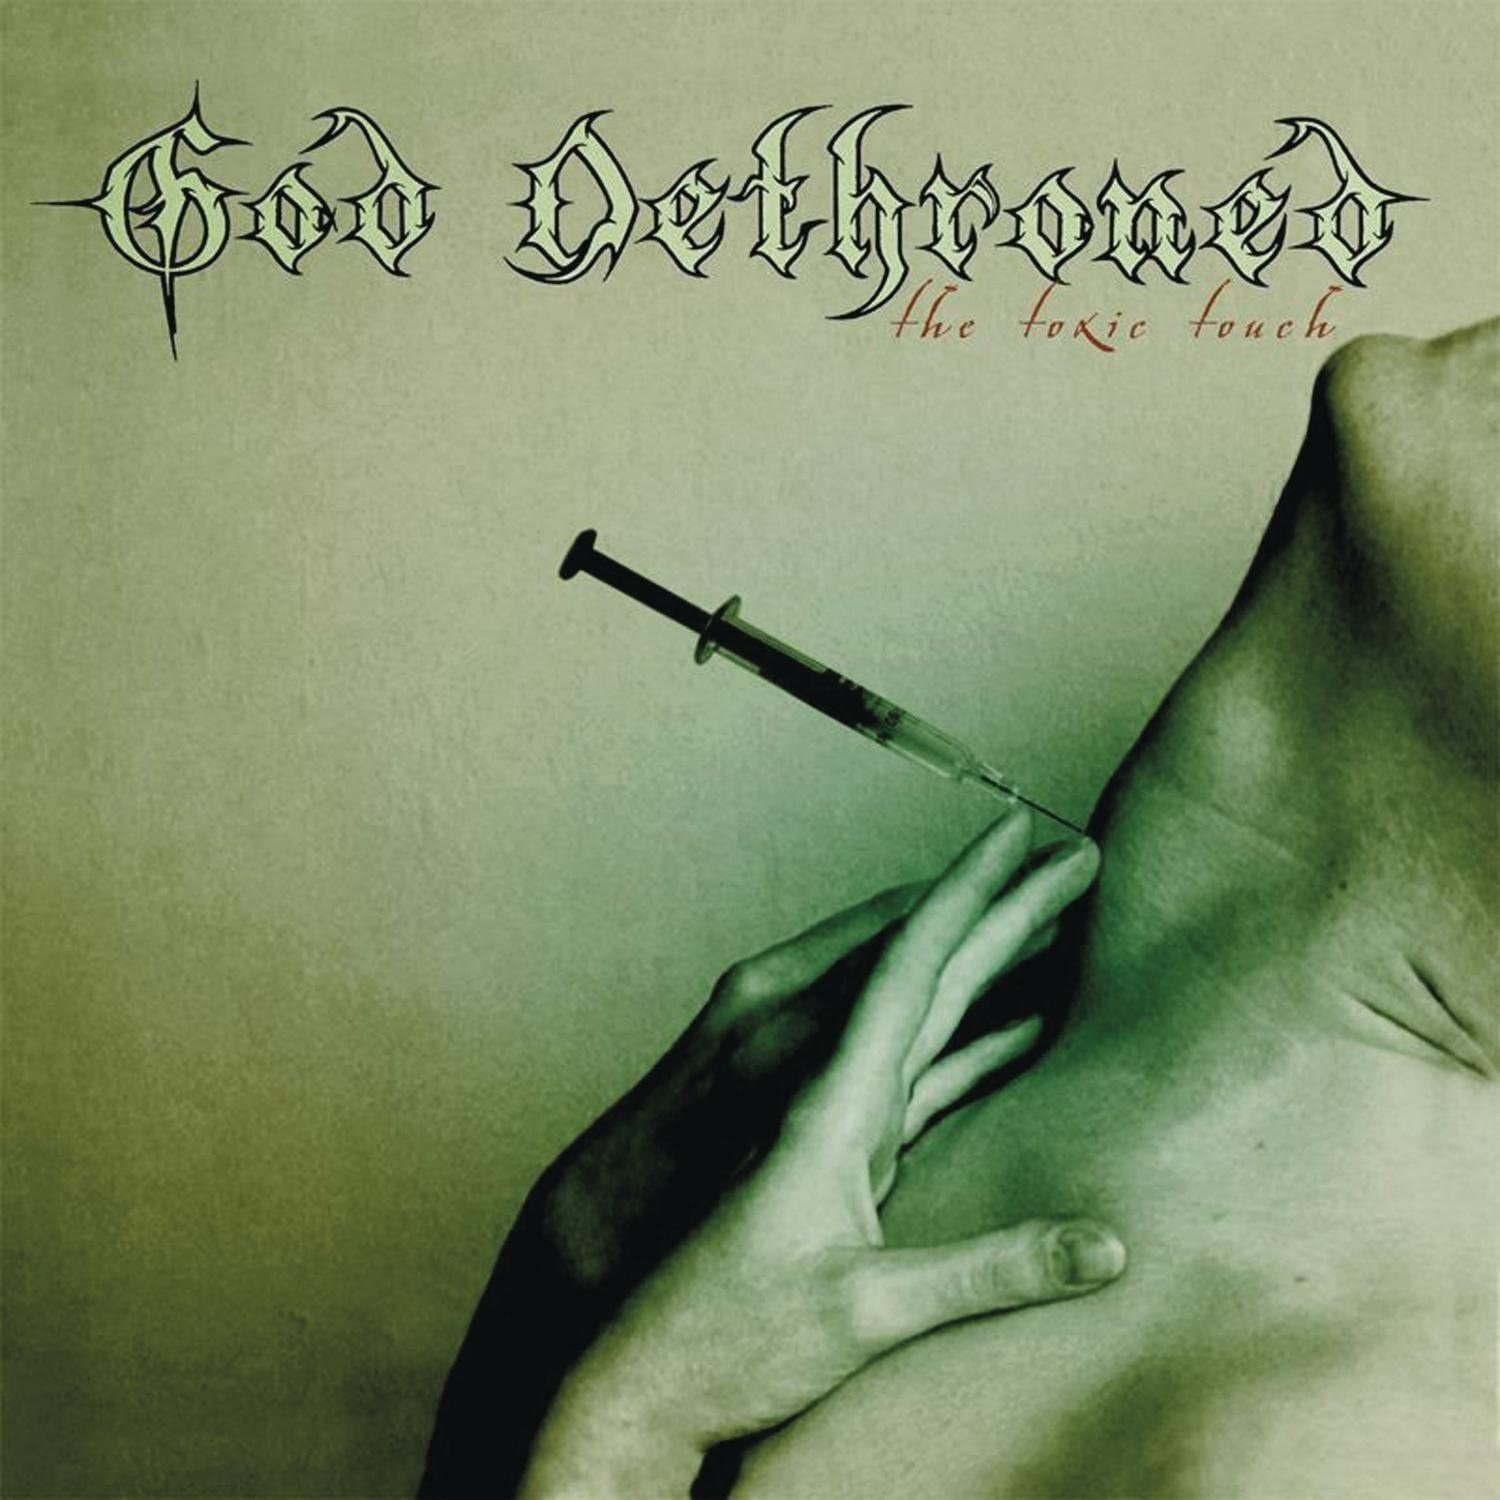 Review for God Dethroned - The Toxic Touch